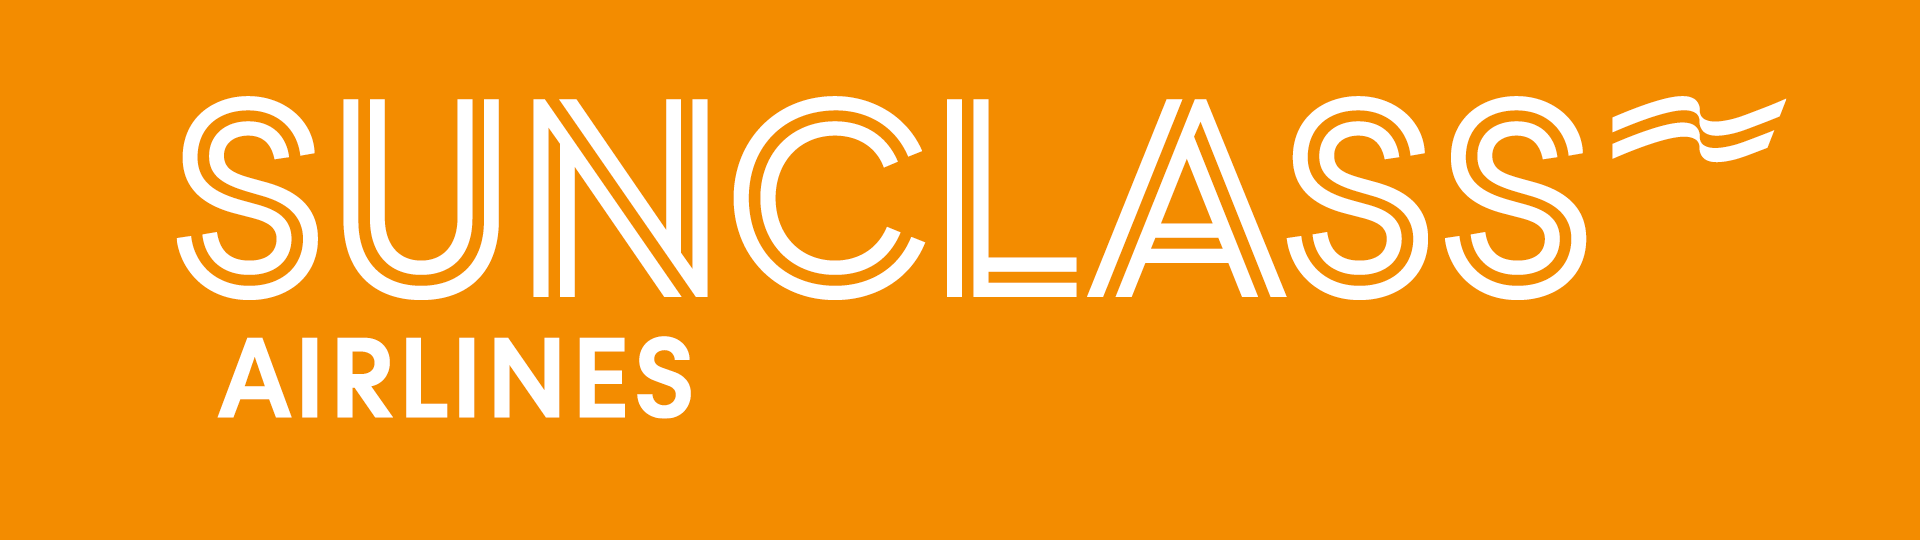 Sunclass Airlines logo